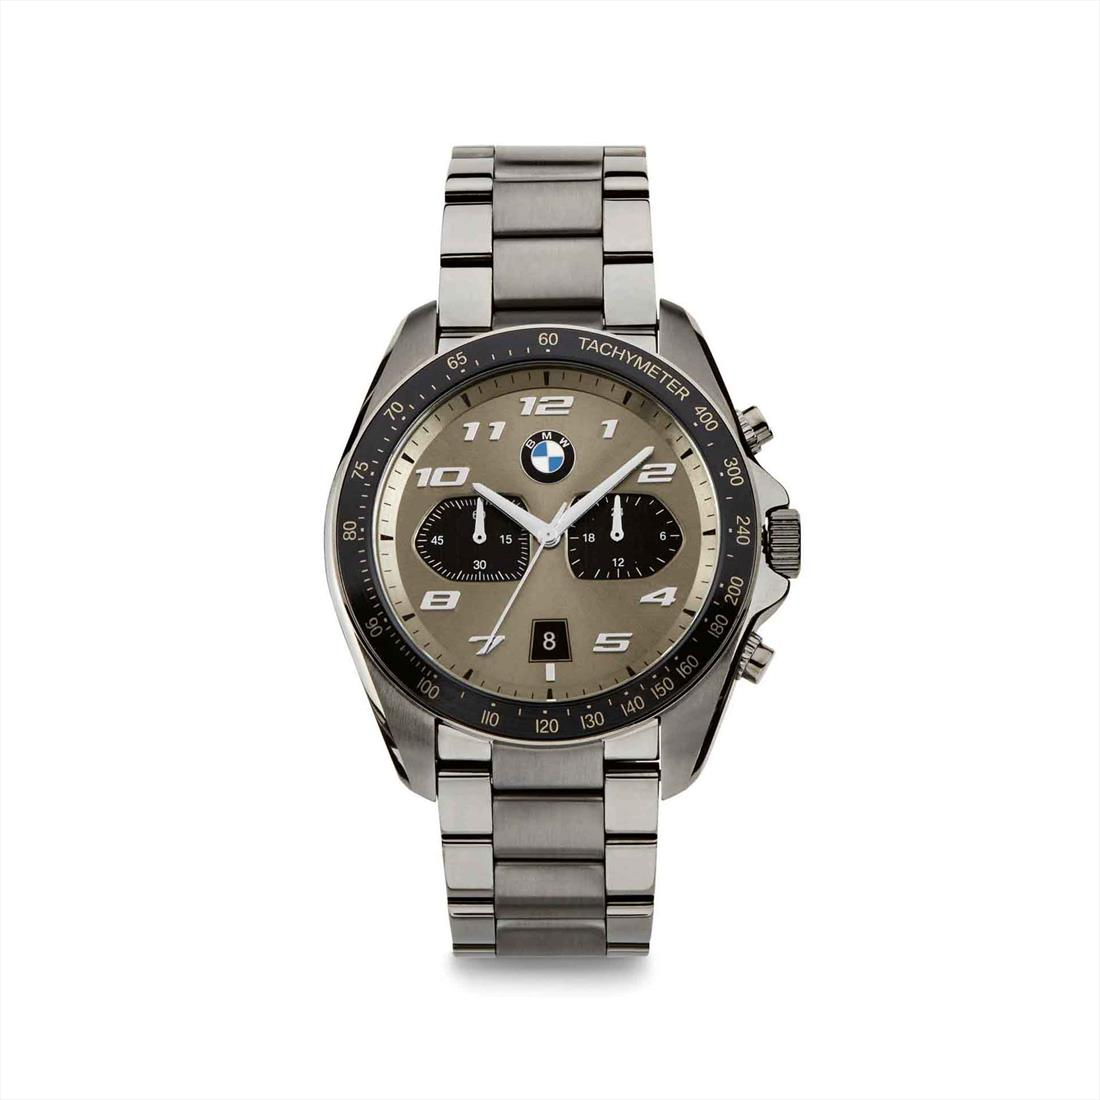 BMW SPORT CHRONOGRAPH WATCH